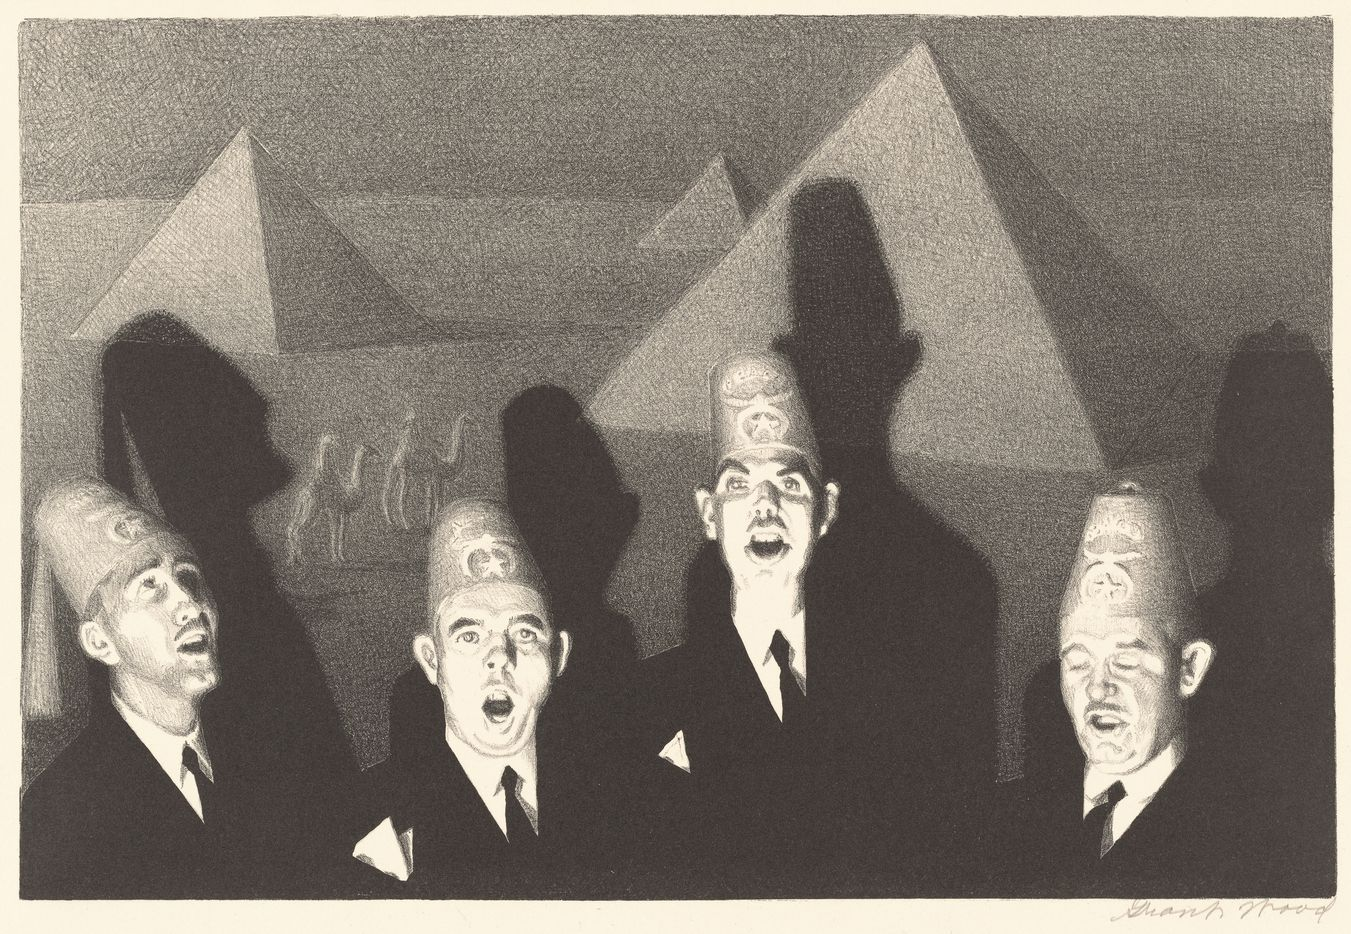 Grant Wood, Shrine Quartet, 1939, lithograph, National Gallery of Art, Washington, Reba and Dave Williams Collection, Florian Carr Fund and Gift of the Print Research Foundation